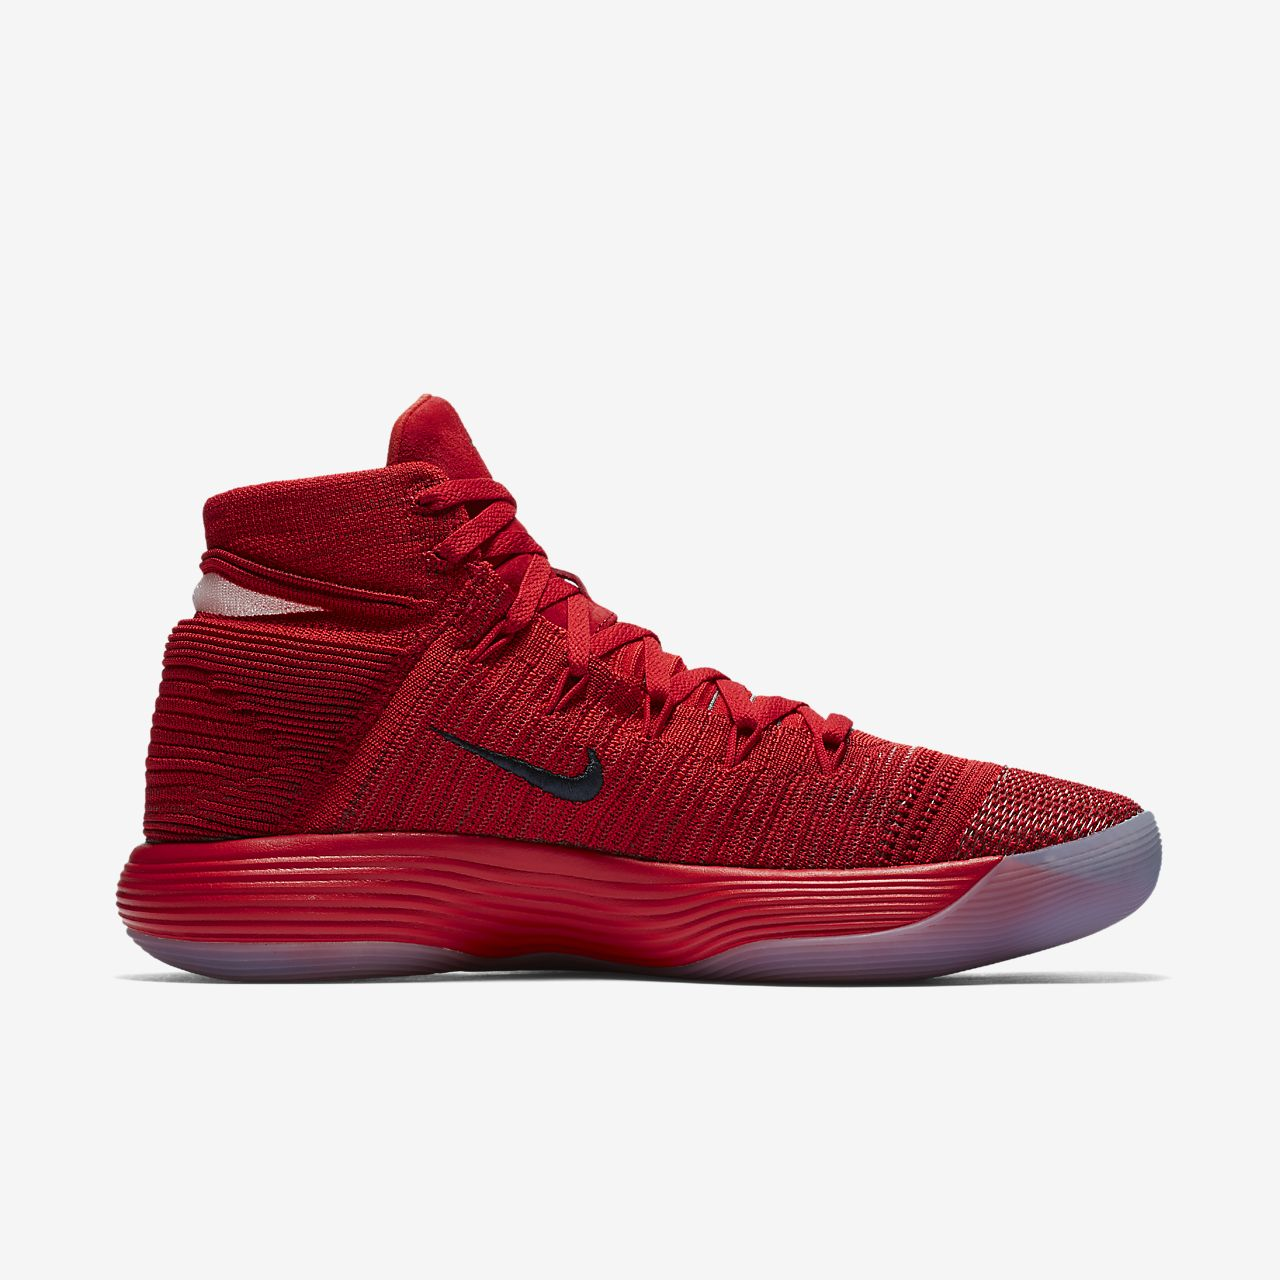 ... Nike React Hyperdunk 2017 Flyknit Basketball Shoe